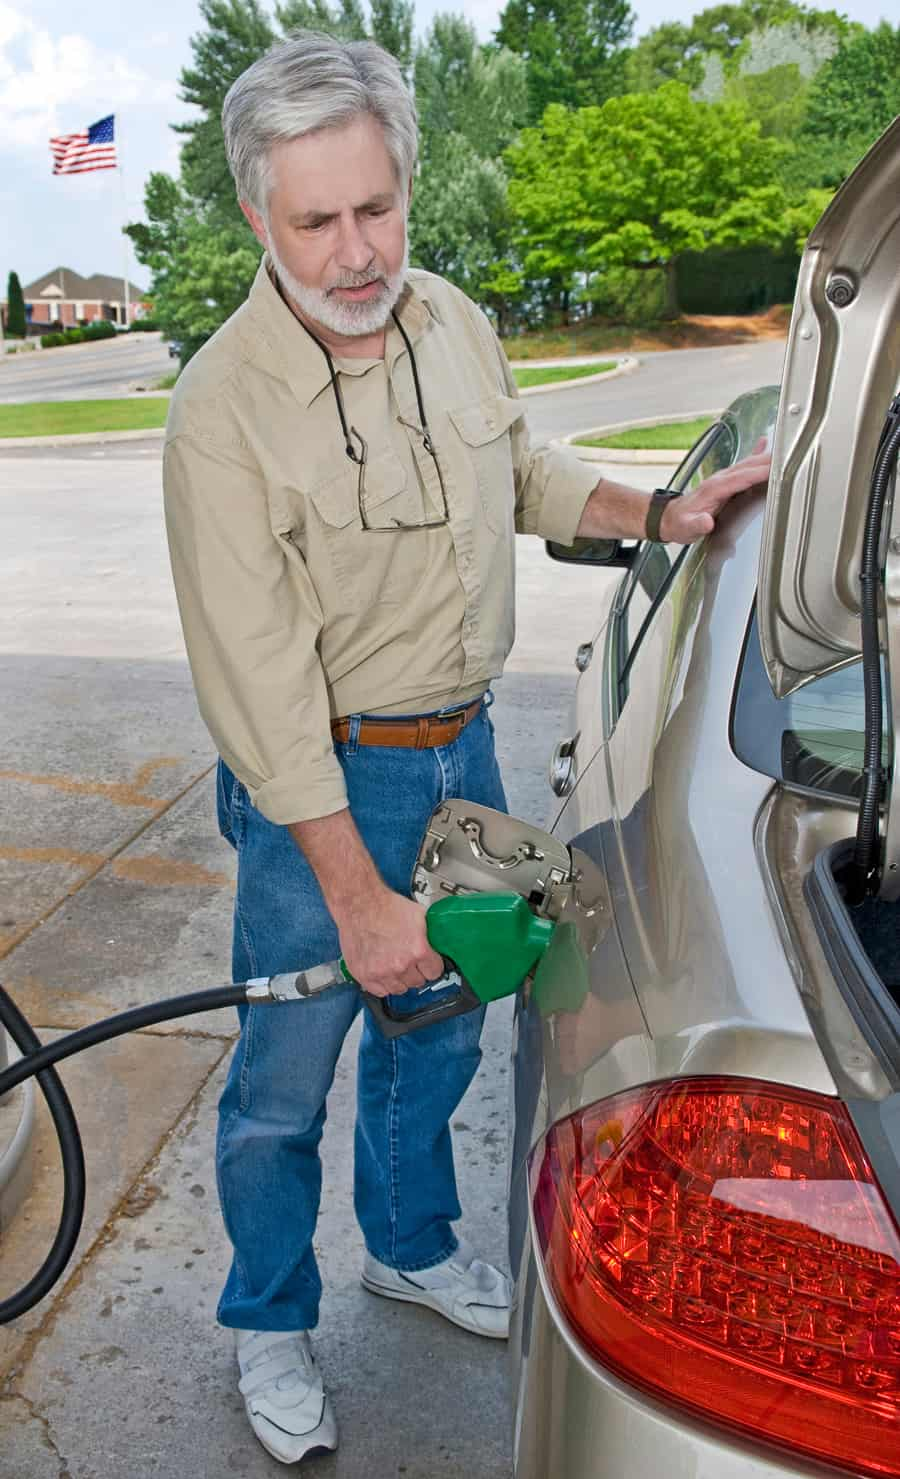 a man pumping gas